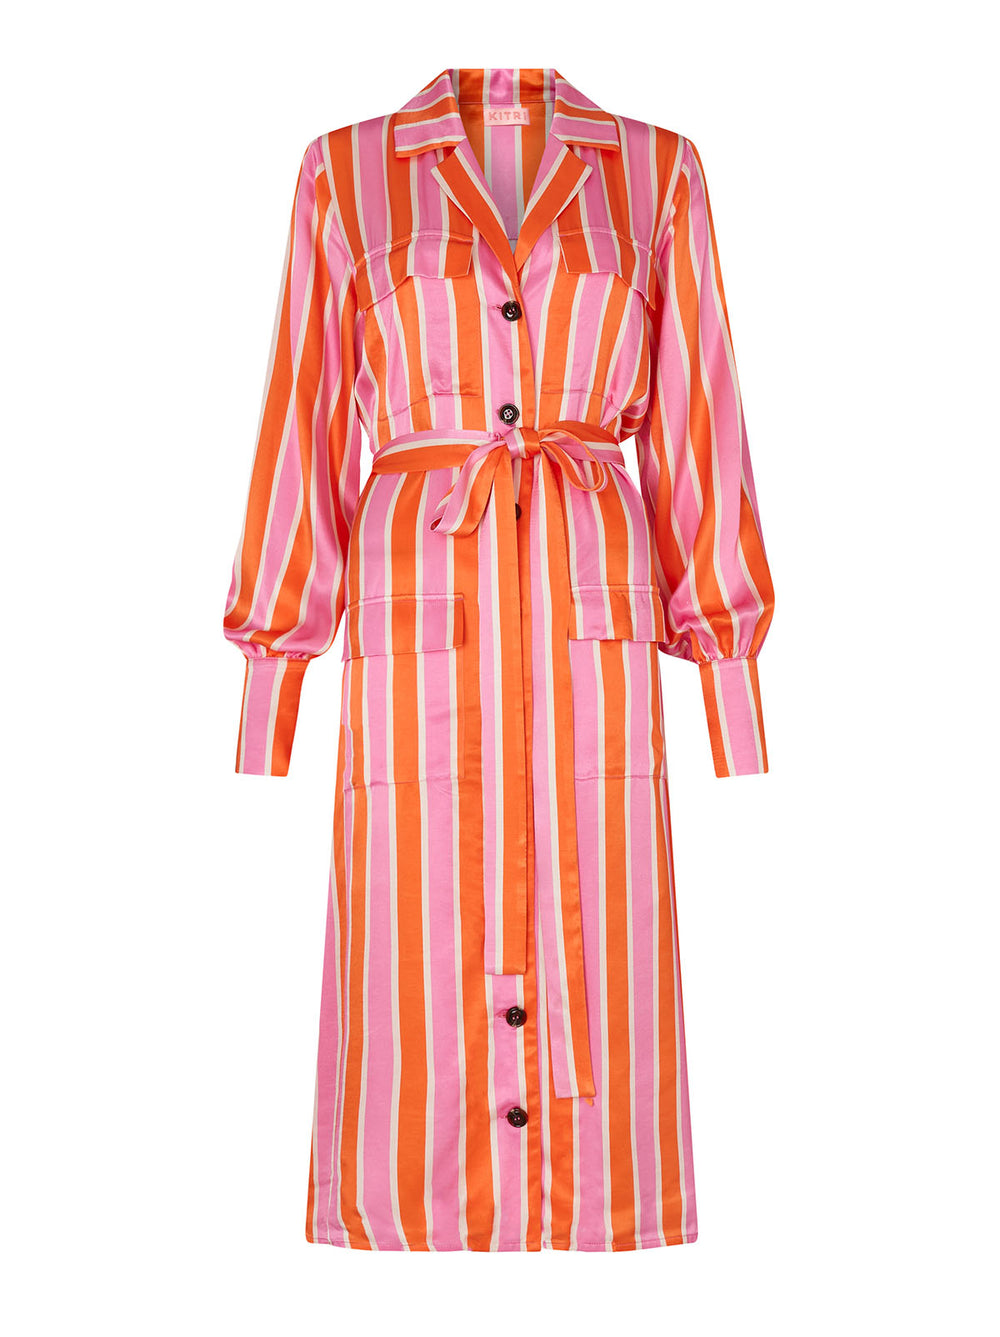 Irina Candy Stripe Shirt Dress